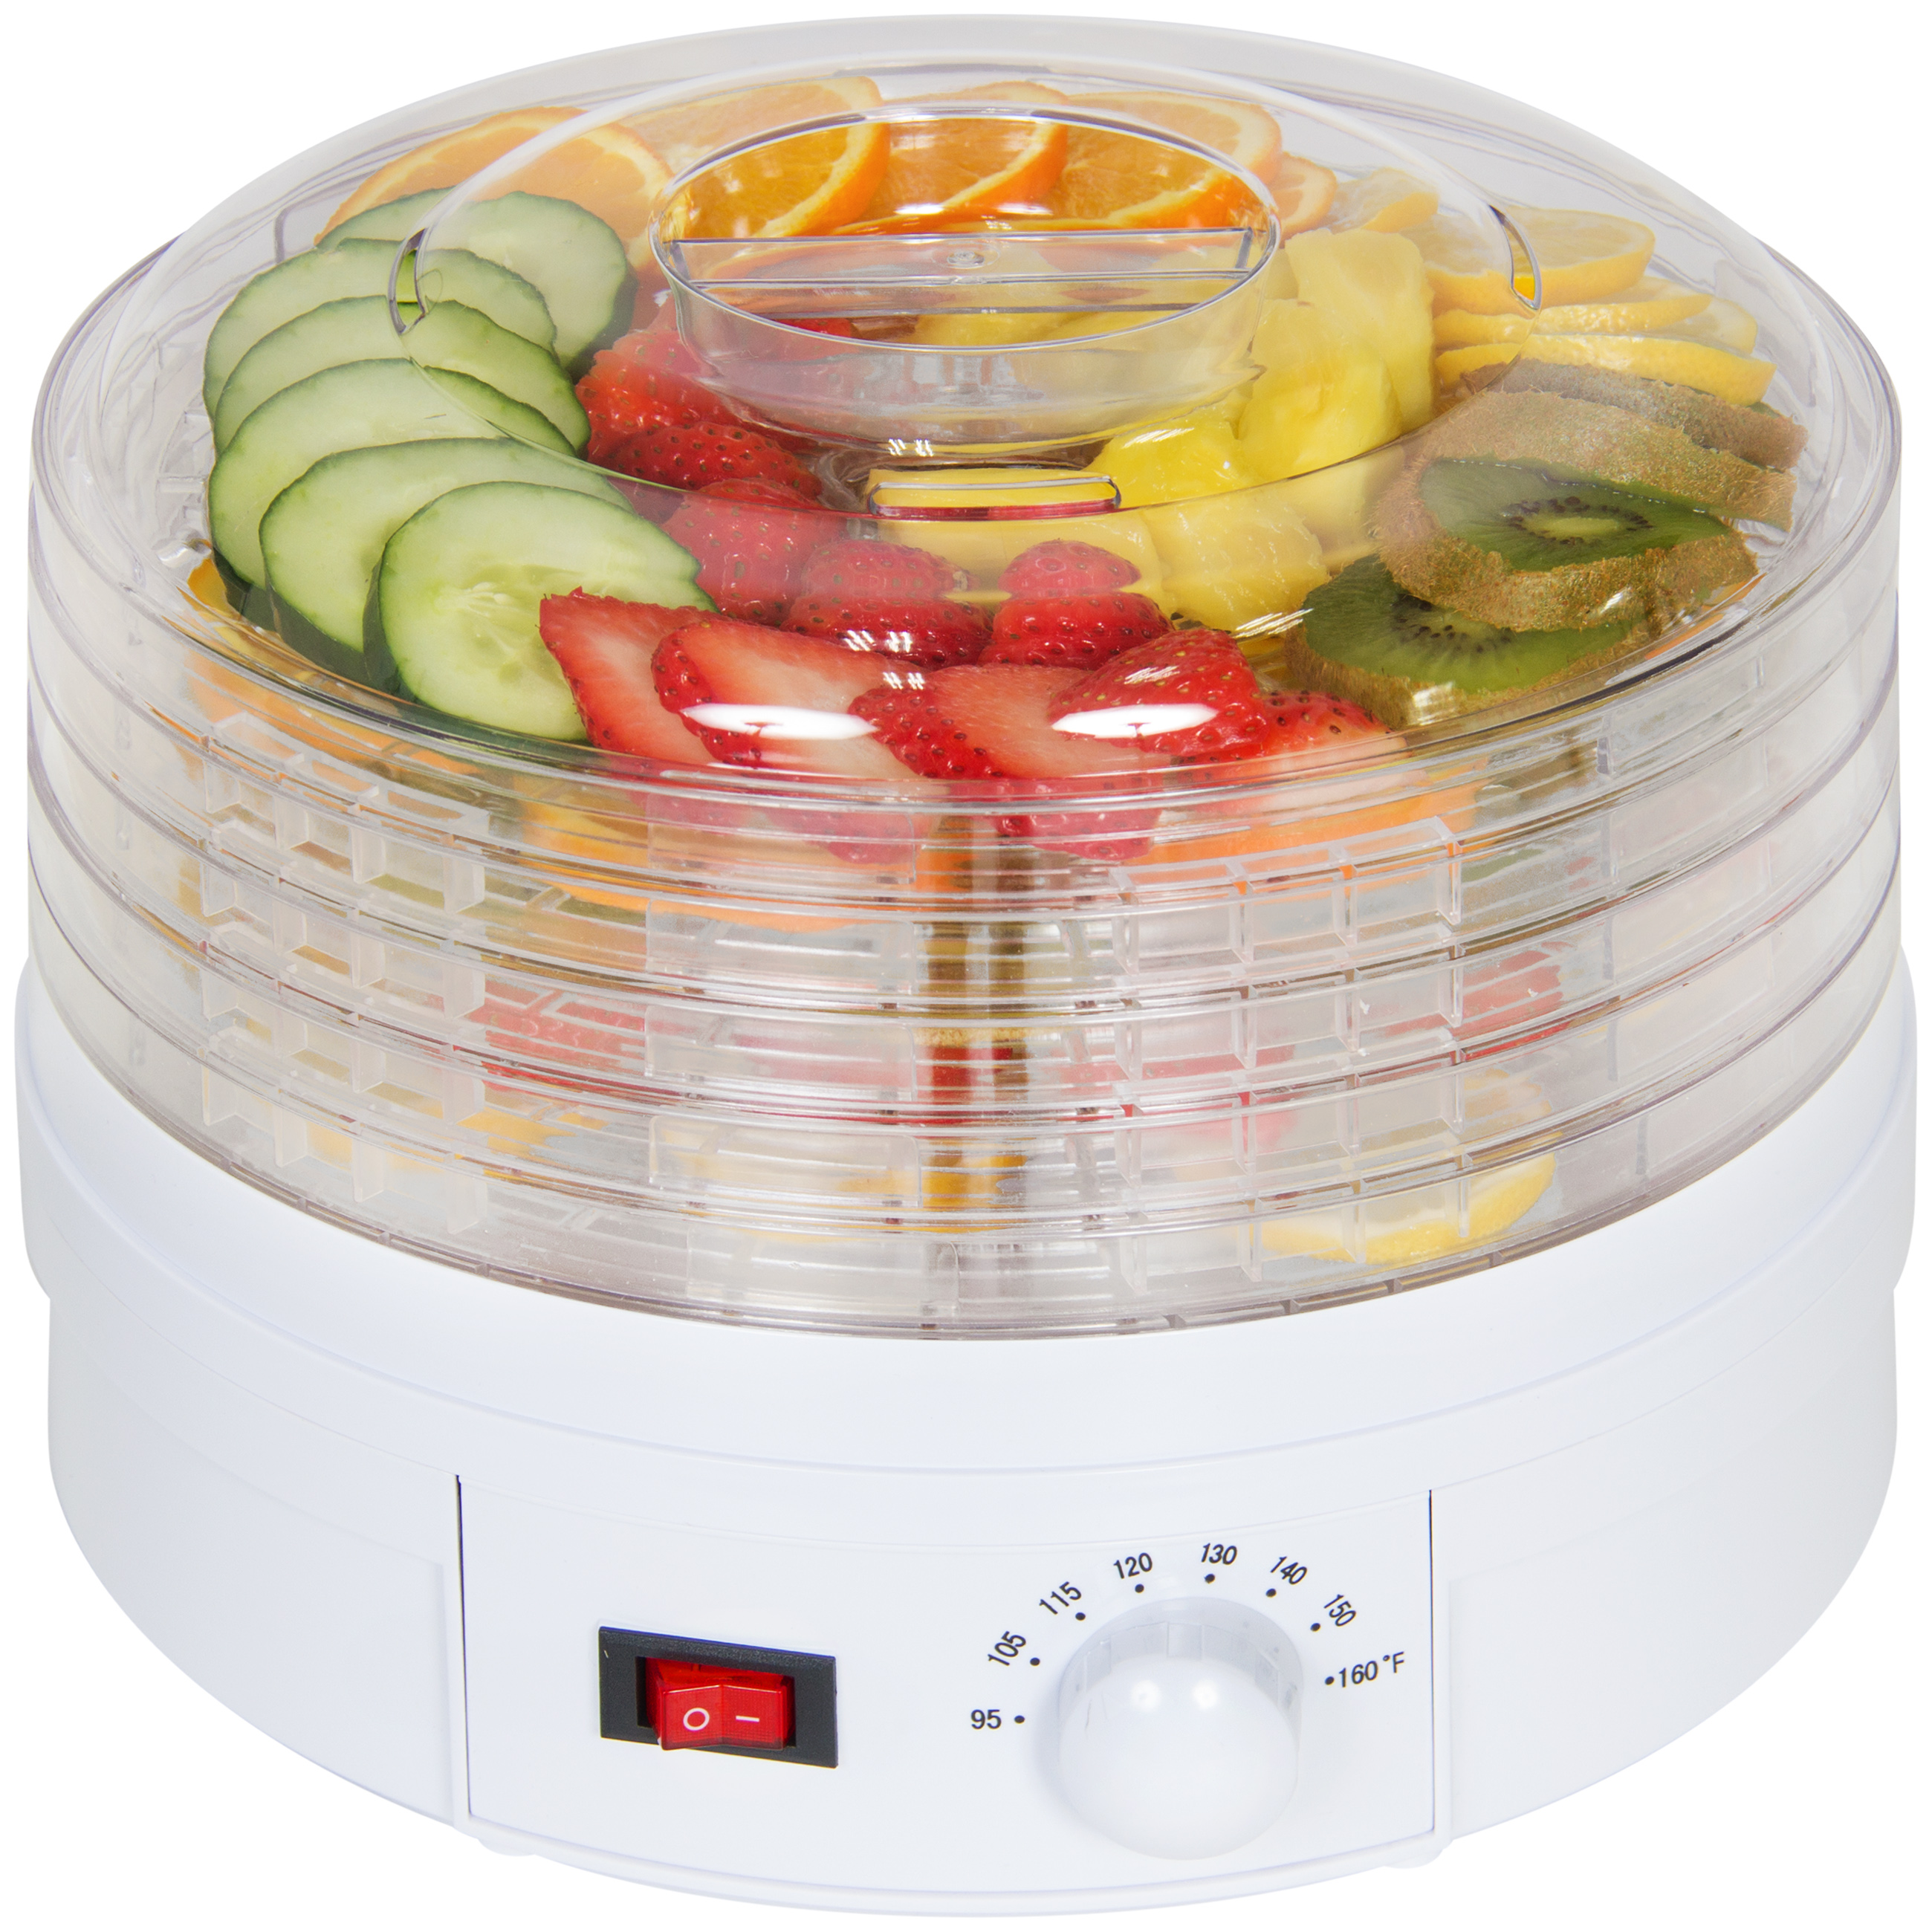 Best Choice Products 5-Tray Portable Electric Food Dehydrator for Fruit, Meats, Herbs w/ Adjustable Thermostat - White